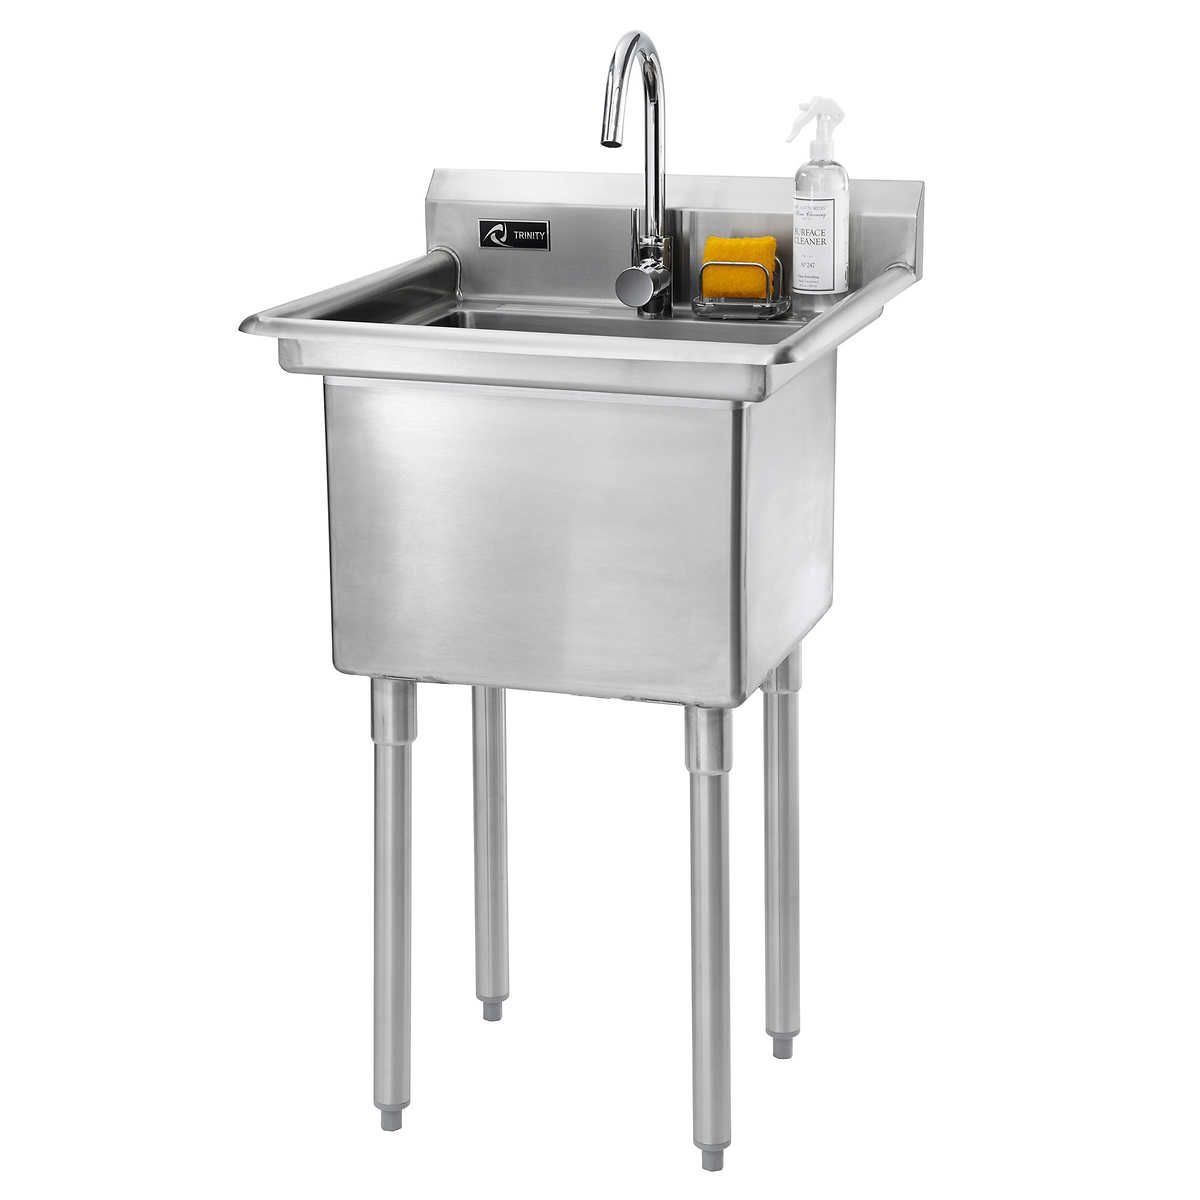 Trinity Stainless Steel Utility Sink With Faucet Stainless Steel Utility Sink Utility Sink Laundry Sink